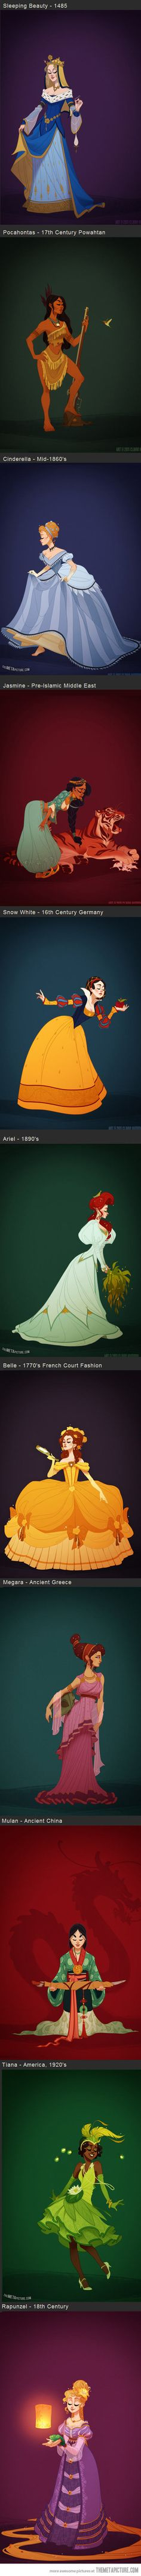 Disney Princesses in accurate period costume…